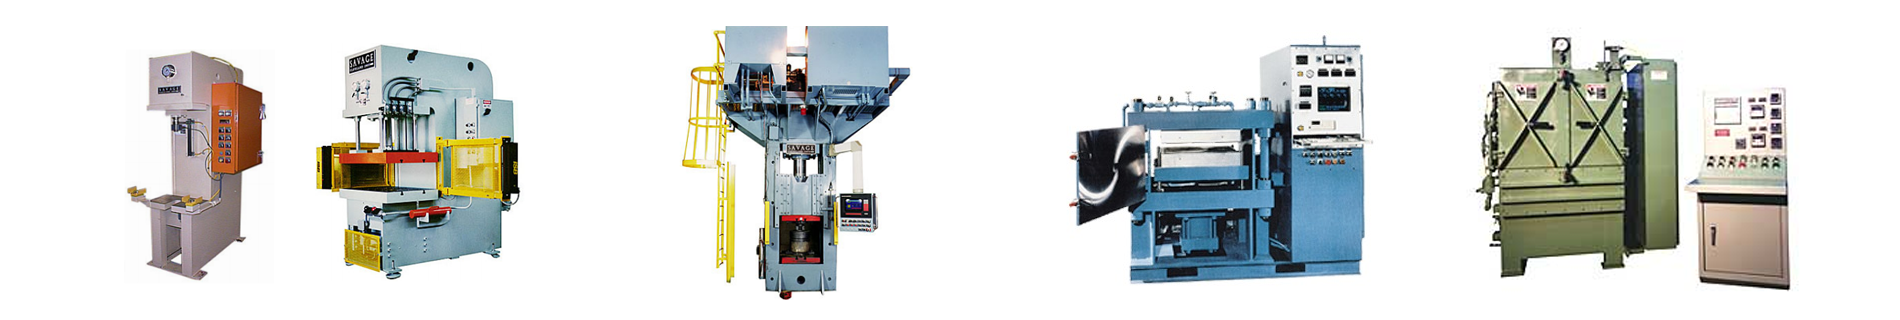 Hydraulic Press Manufacturers banner